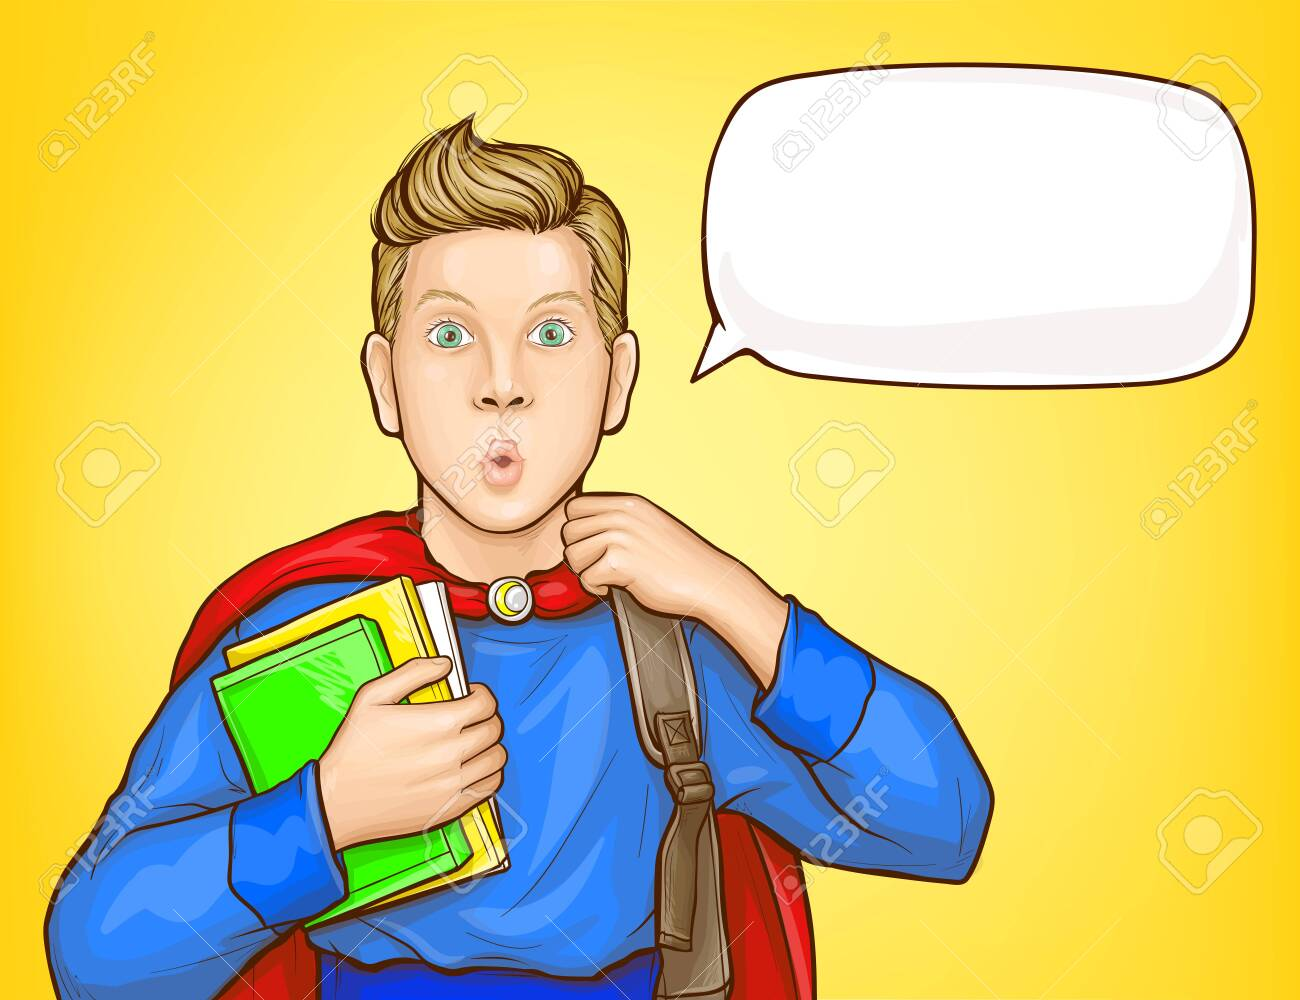 Surprised schoolboy, student in super hero suit, with backpack over shoulder, holding books, looking with amazement popart vector illustration. School supplies sale, educational course poster template - 137865718